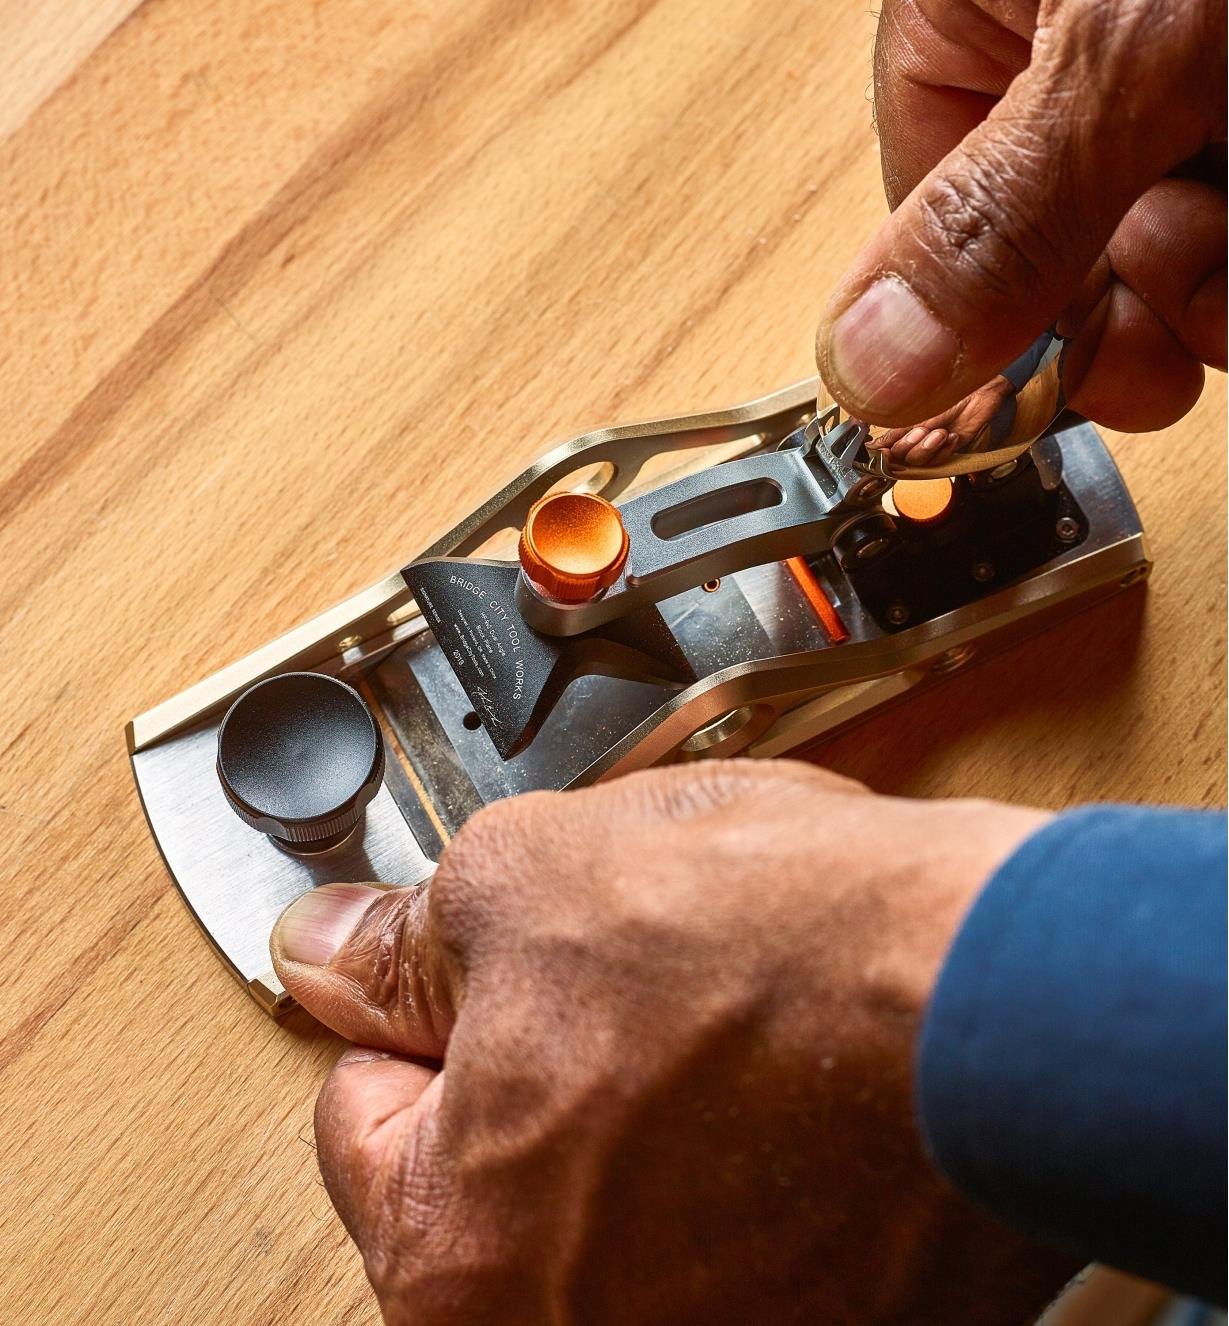 Releasing the toggle lock mechanism when changing blades on a dual-angle block plane